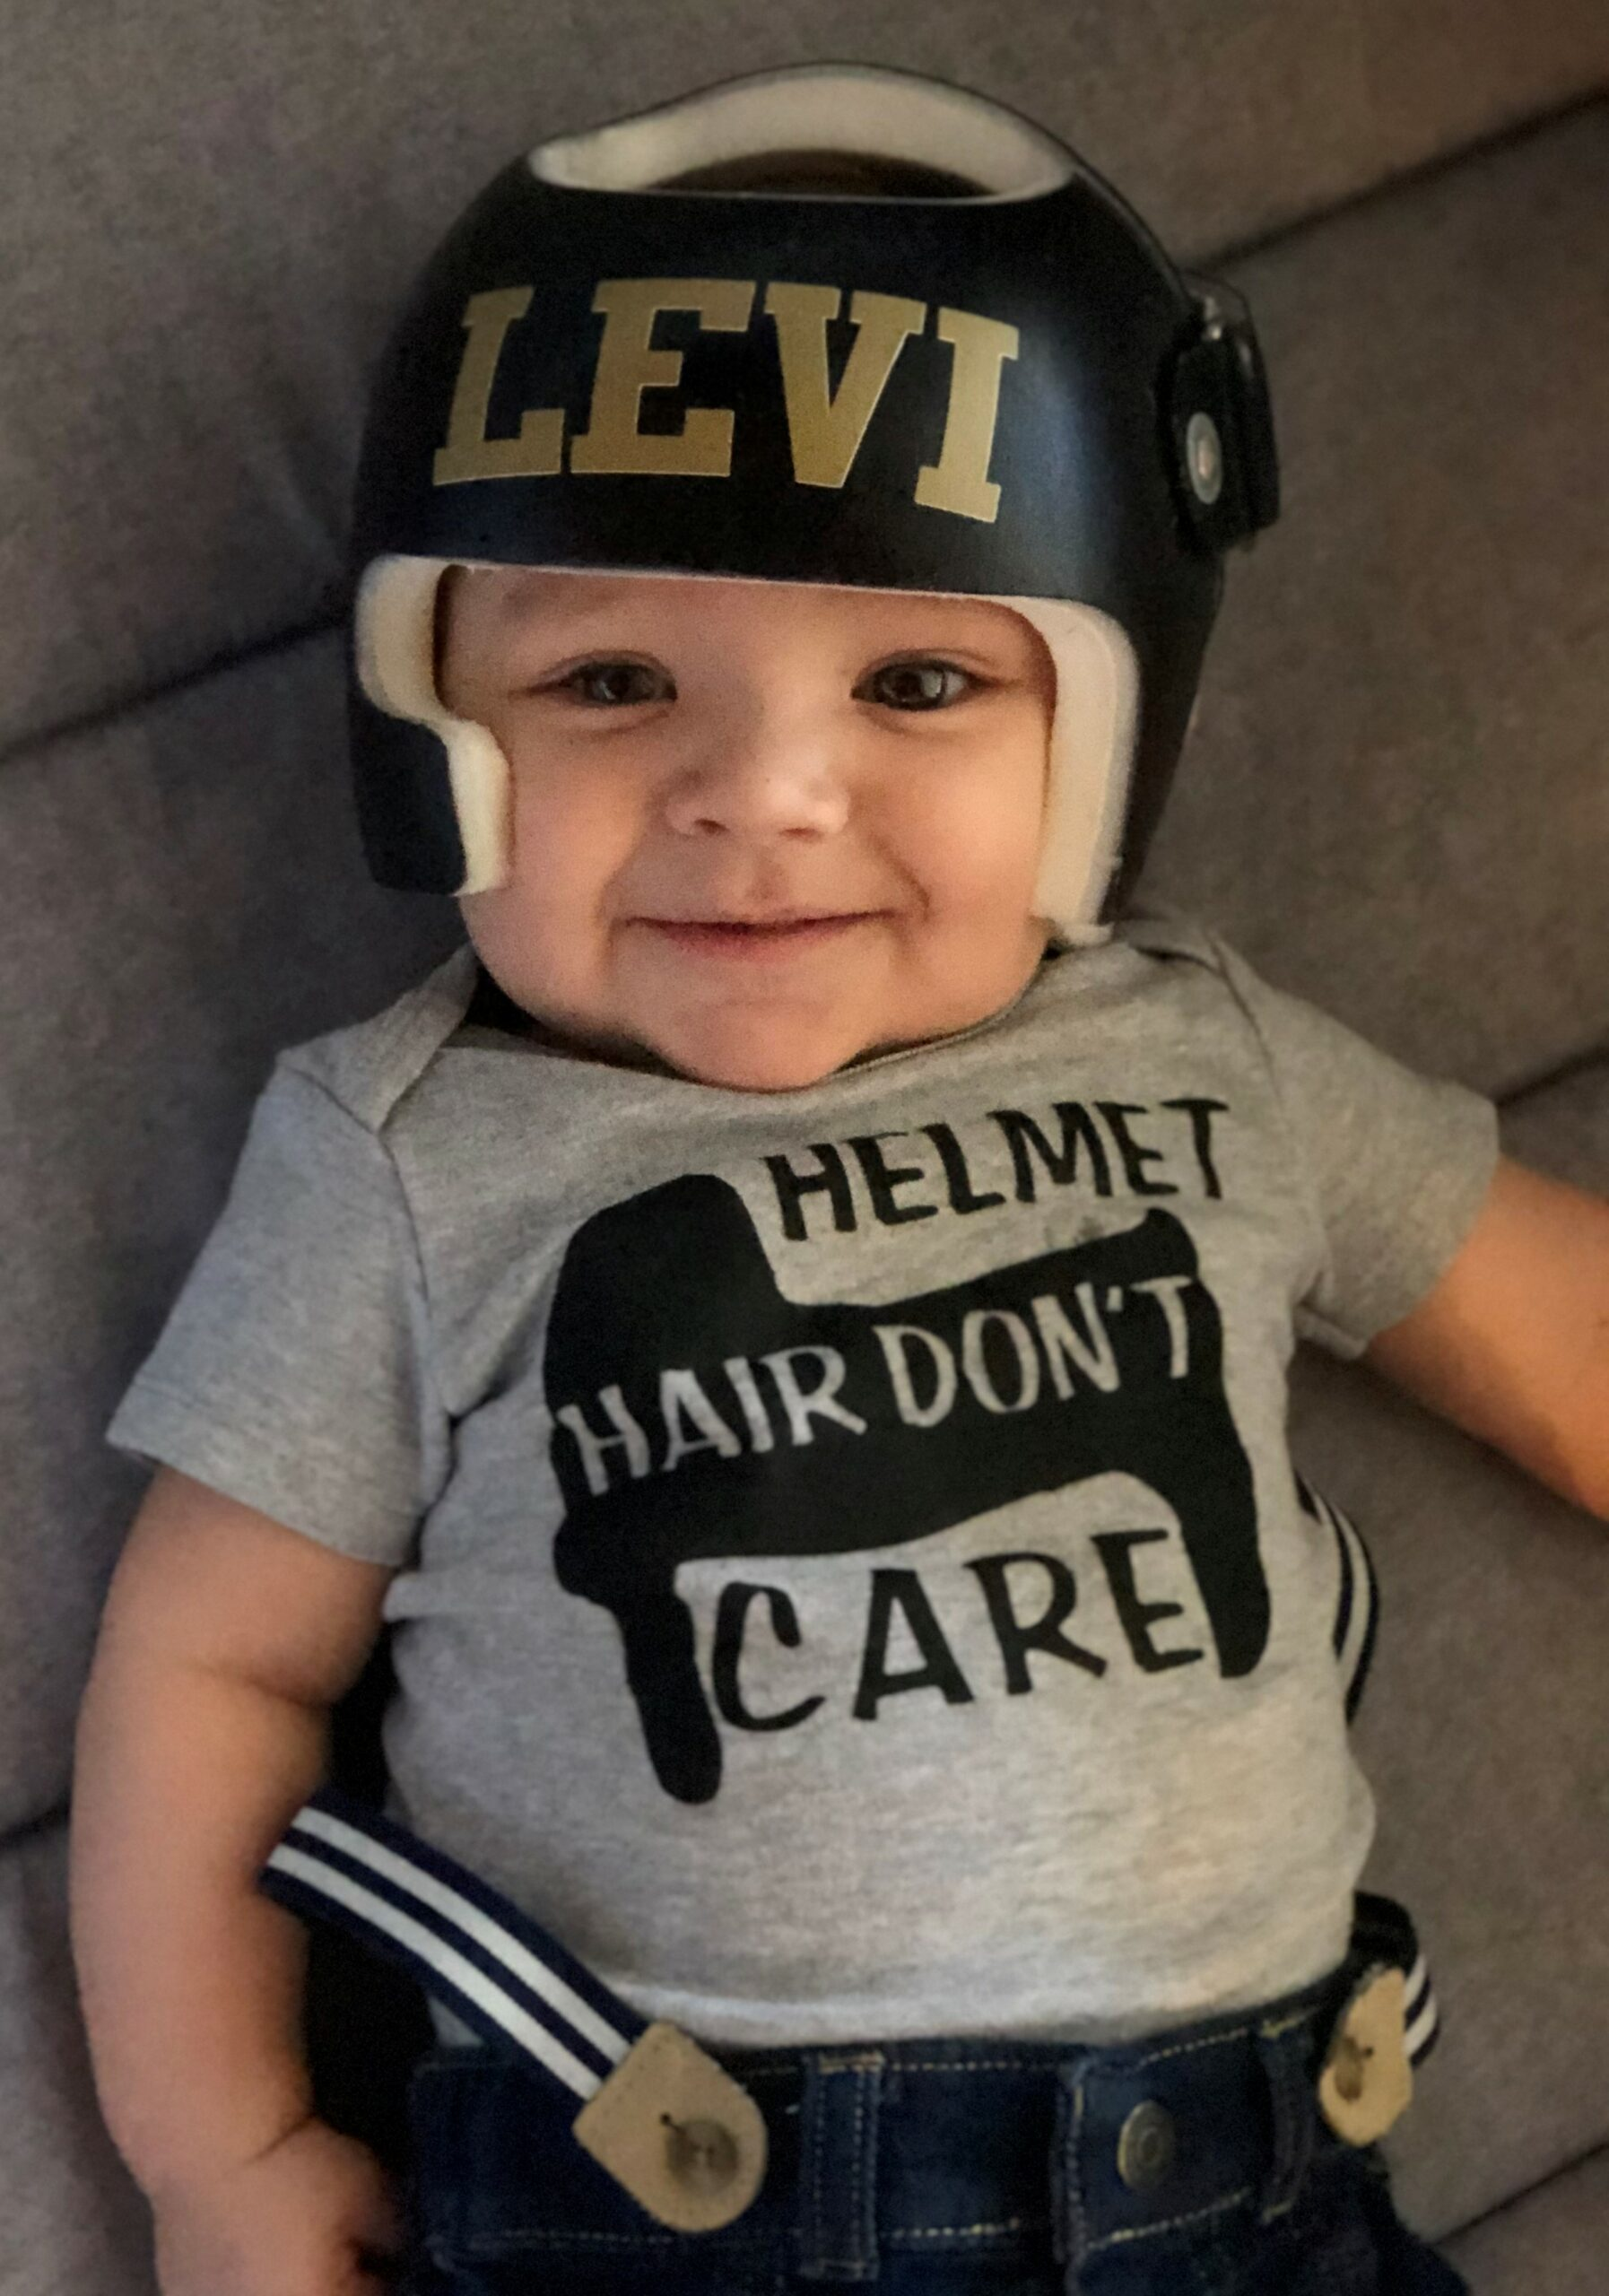 Helmet hair don't care cranial band